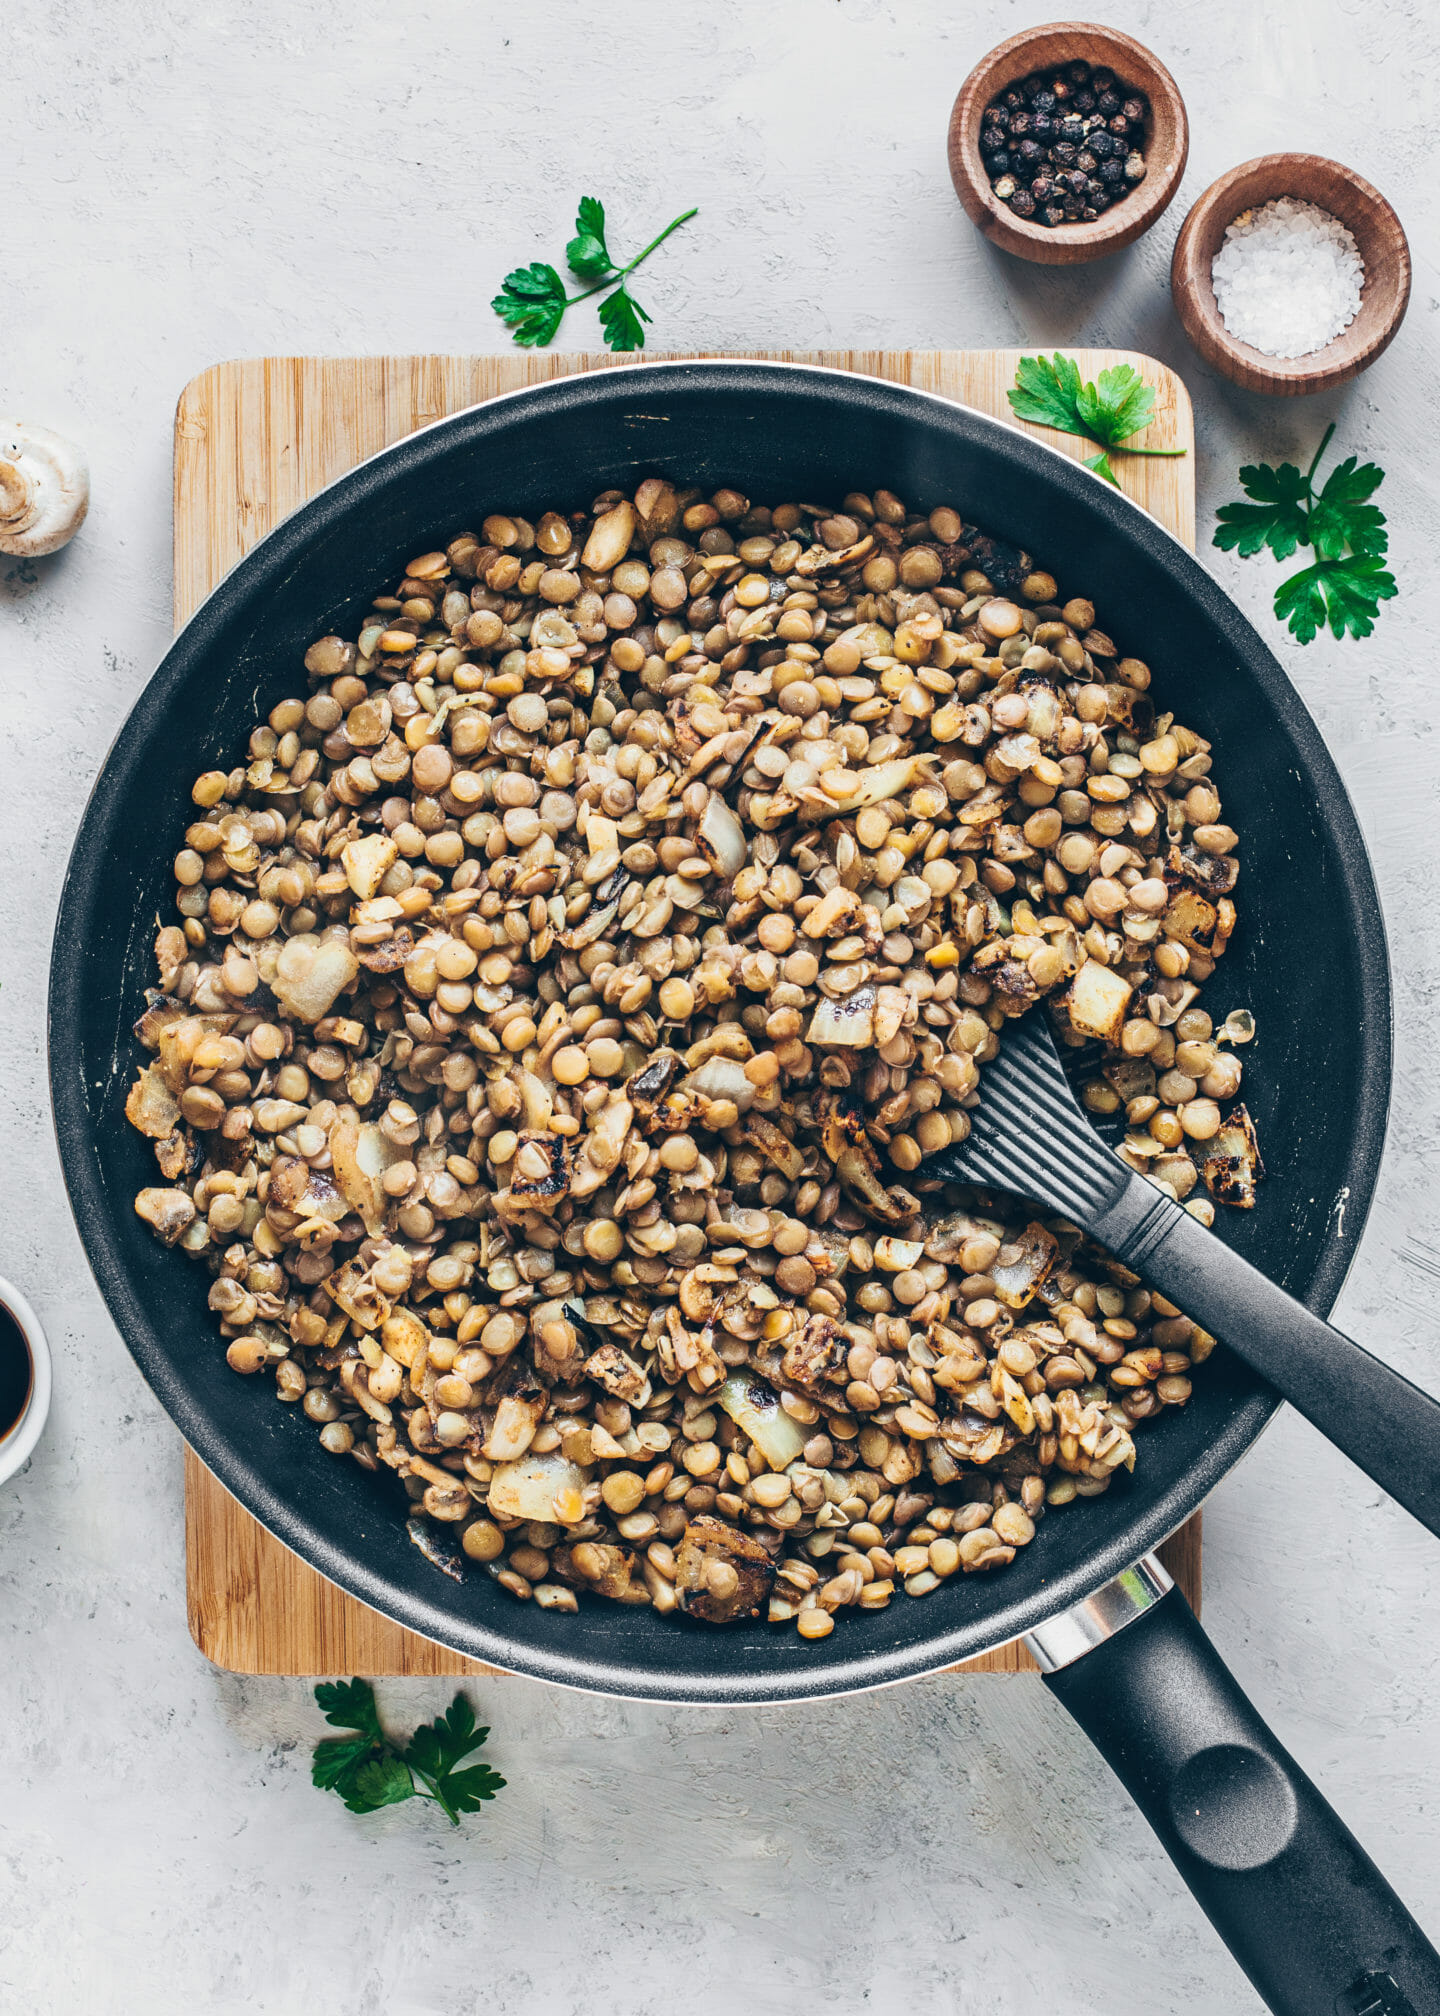 sautéed onions, garlic, and cooked lentils in a pan for no-meat balls